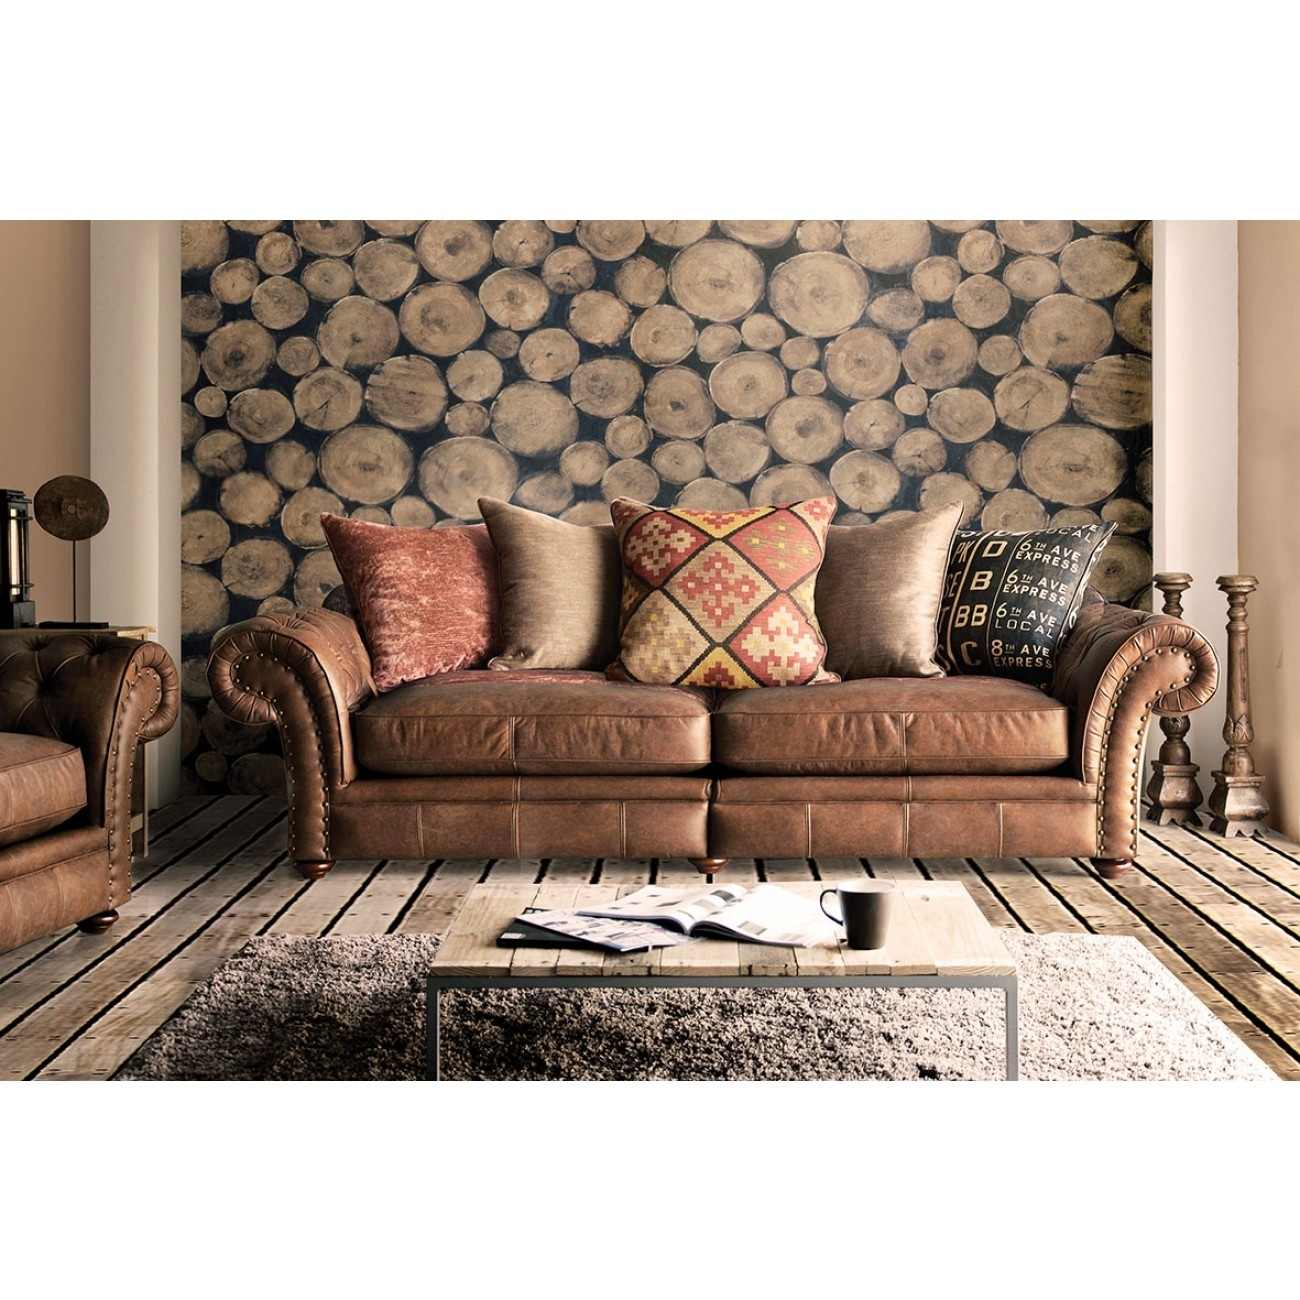 Best Leather And Fabric Sofas 34 Sofa Room Ideas With Leather And Within Leather And Cloth Sofas (View 2 of 10)